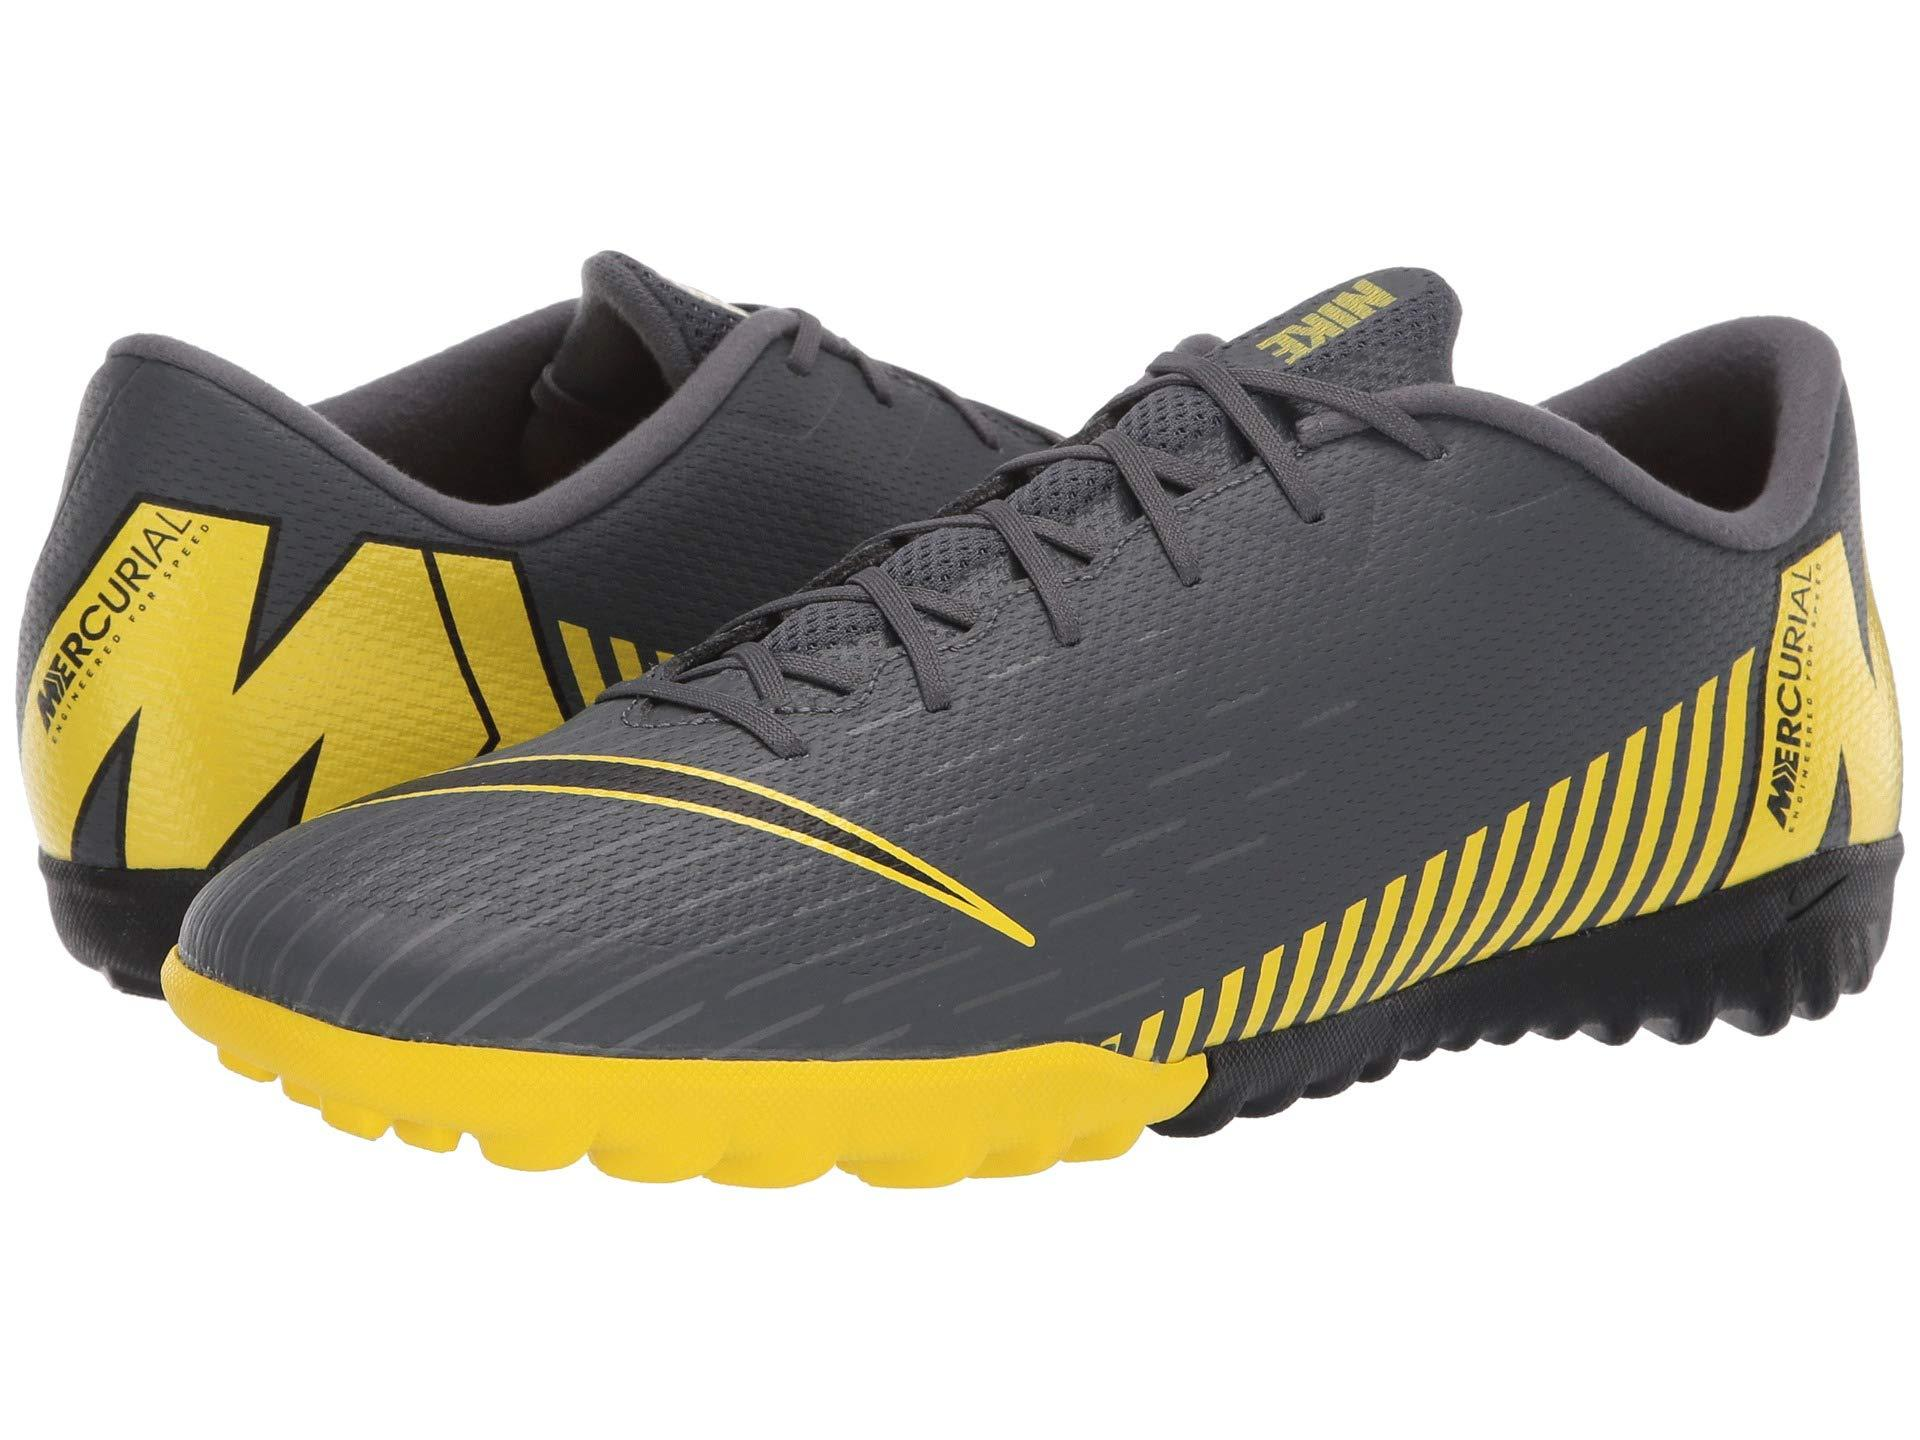 promo code 0cab4 2806a nike-Dark-GreyBlackOpti-Yellow-Vaporx-12-Academy-Tf-dark-Greyblackopti- Yellow-Mens-Soccer-Shoes.jpeg